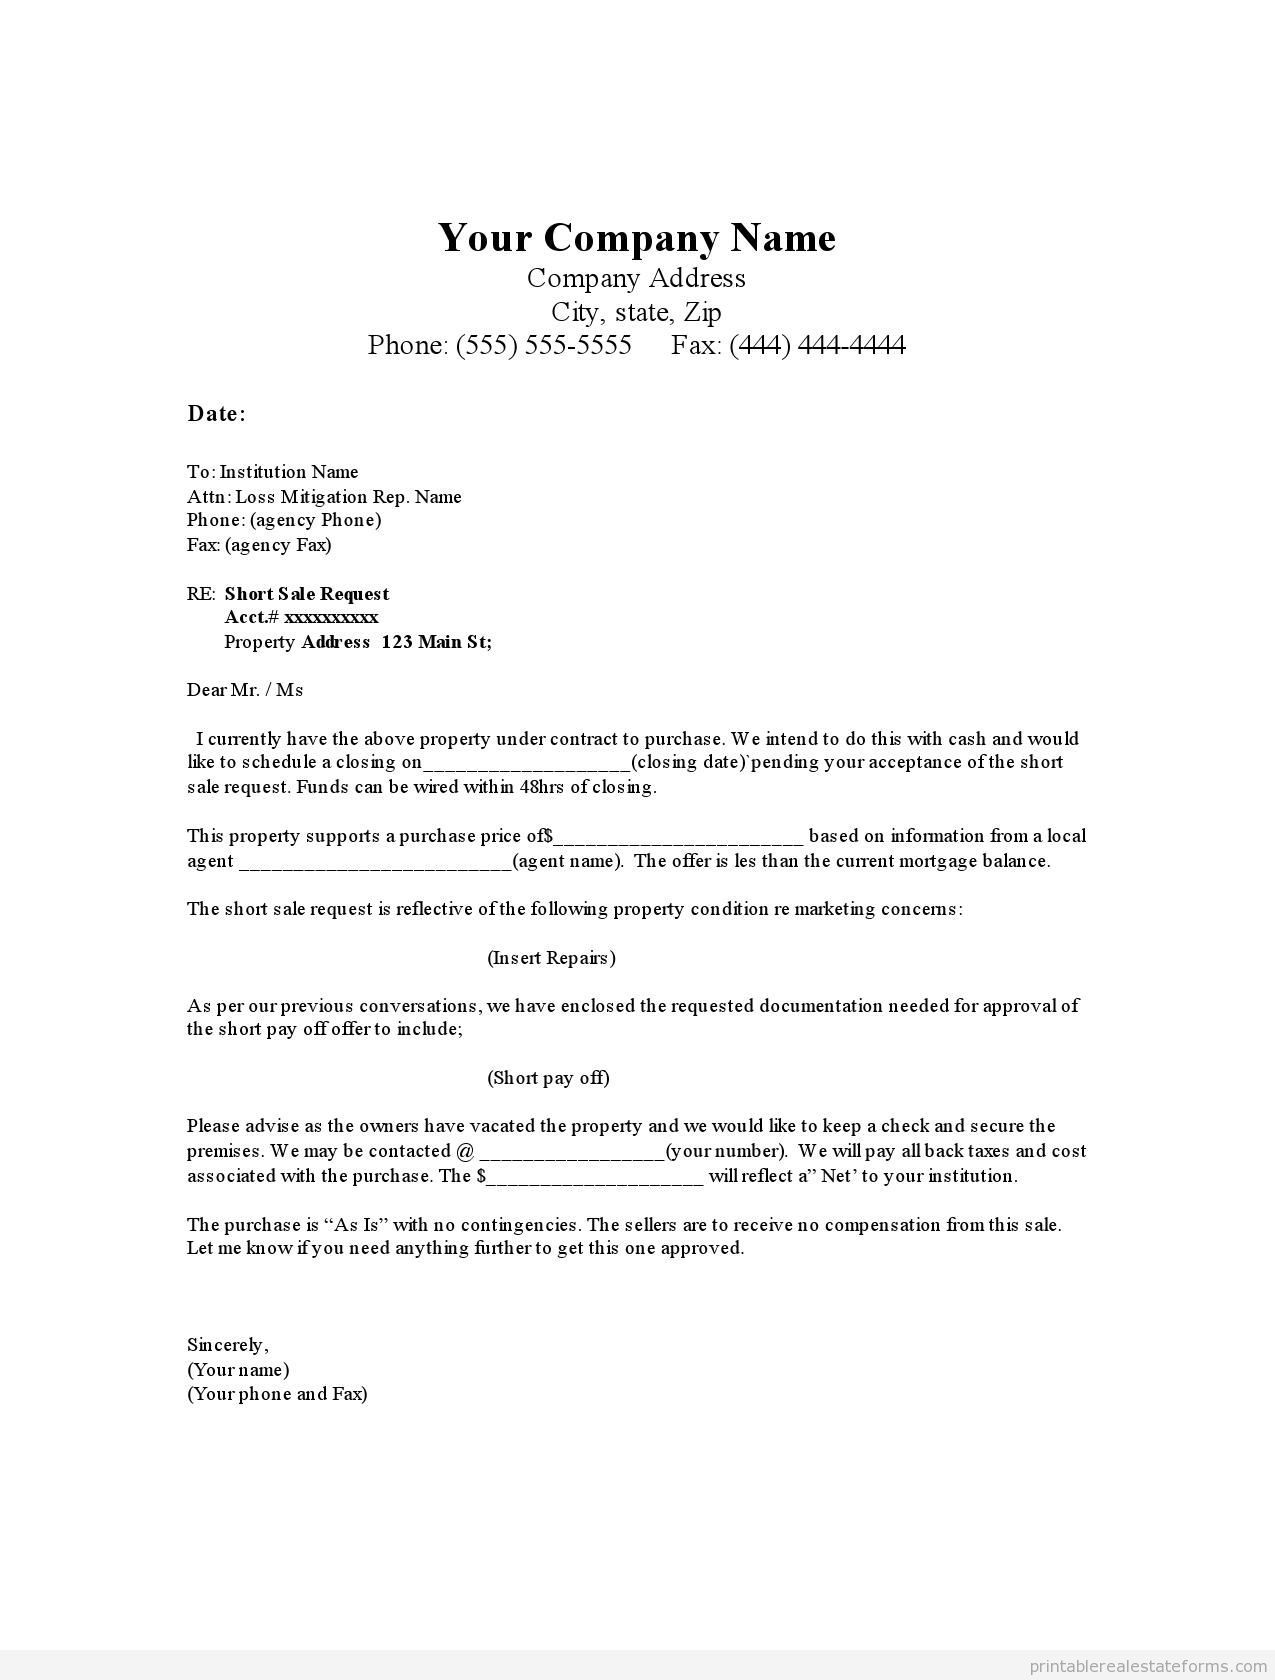 Printable Short Offer Letter Good Condition Template   Sample